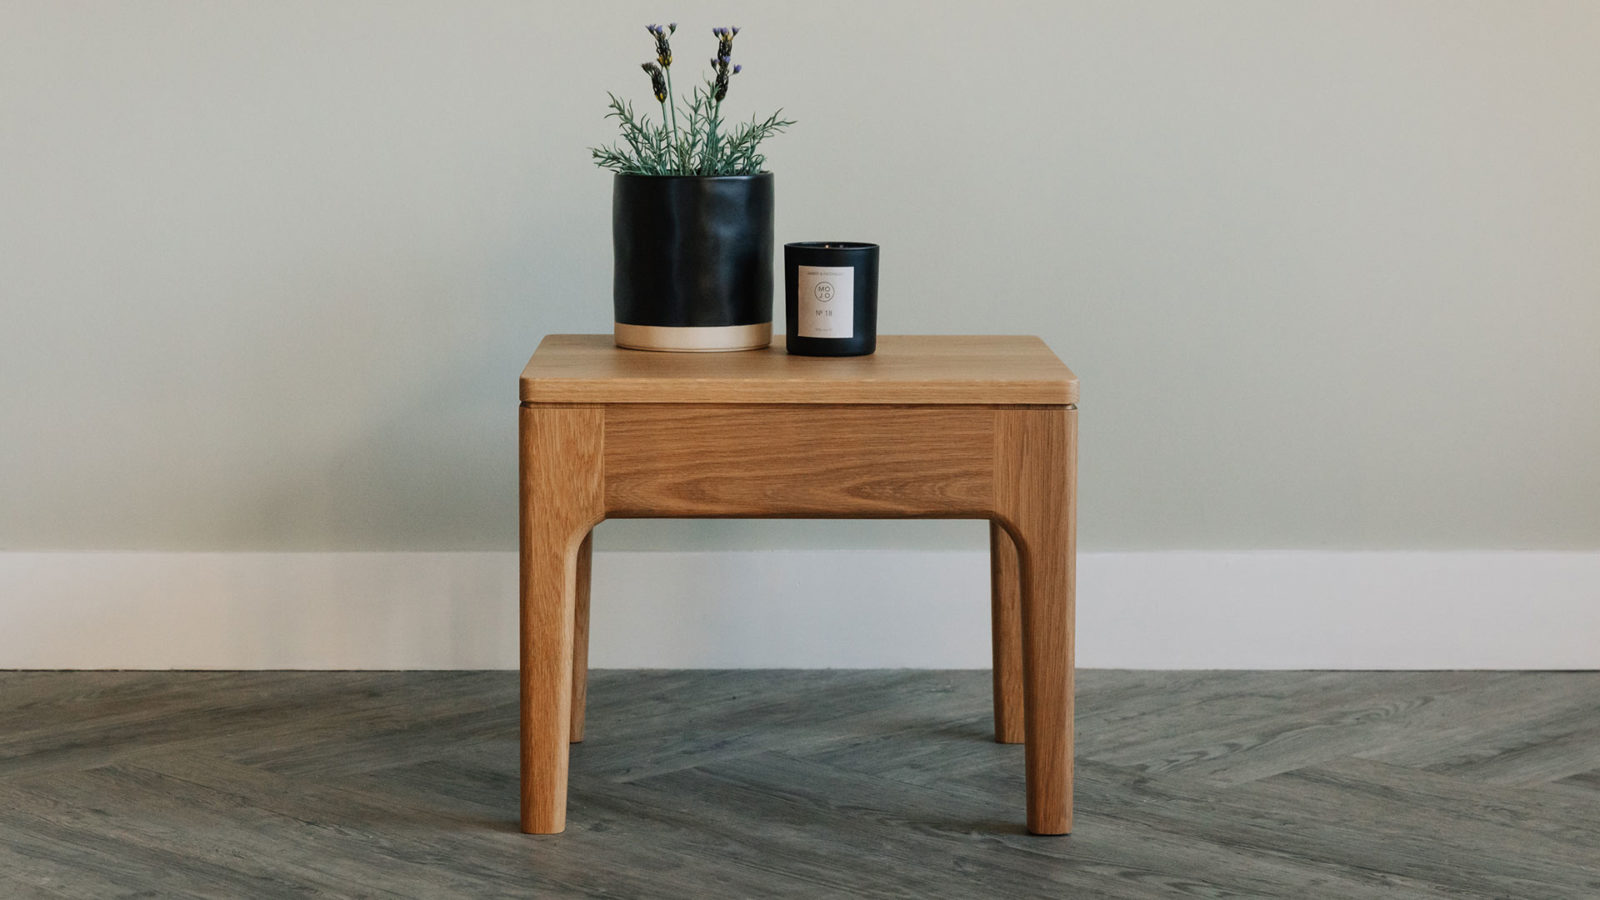 Hand crafted Camden wooden side table in Oak